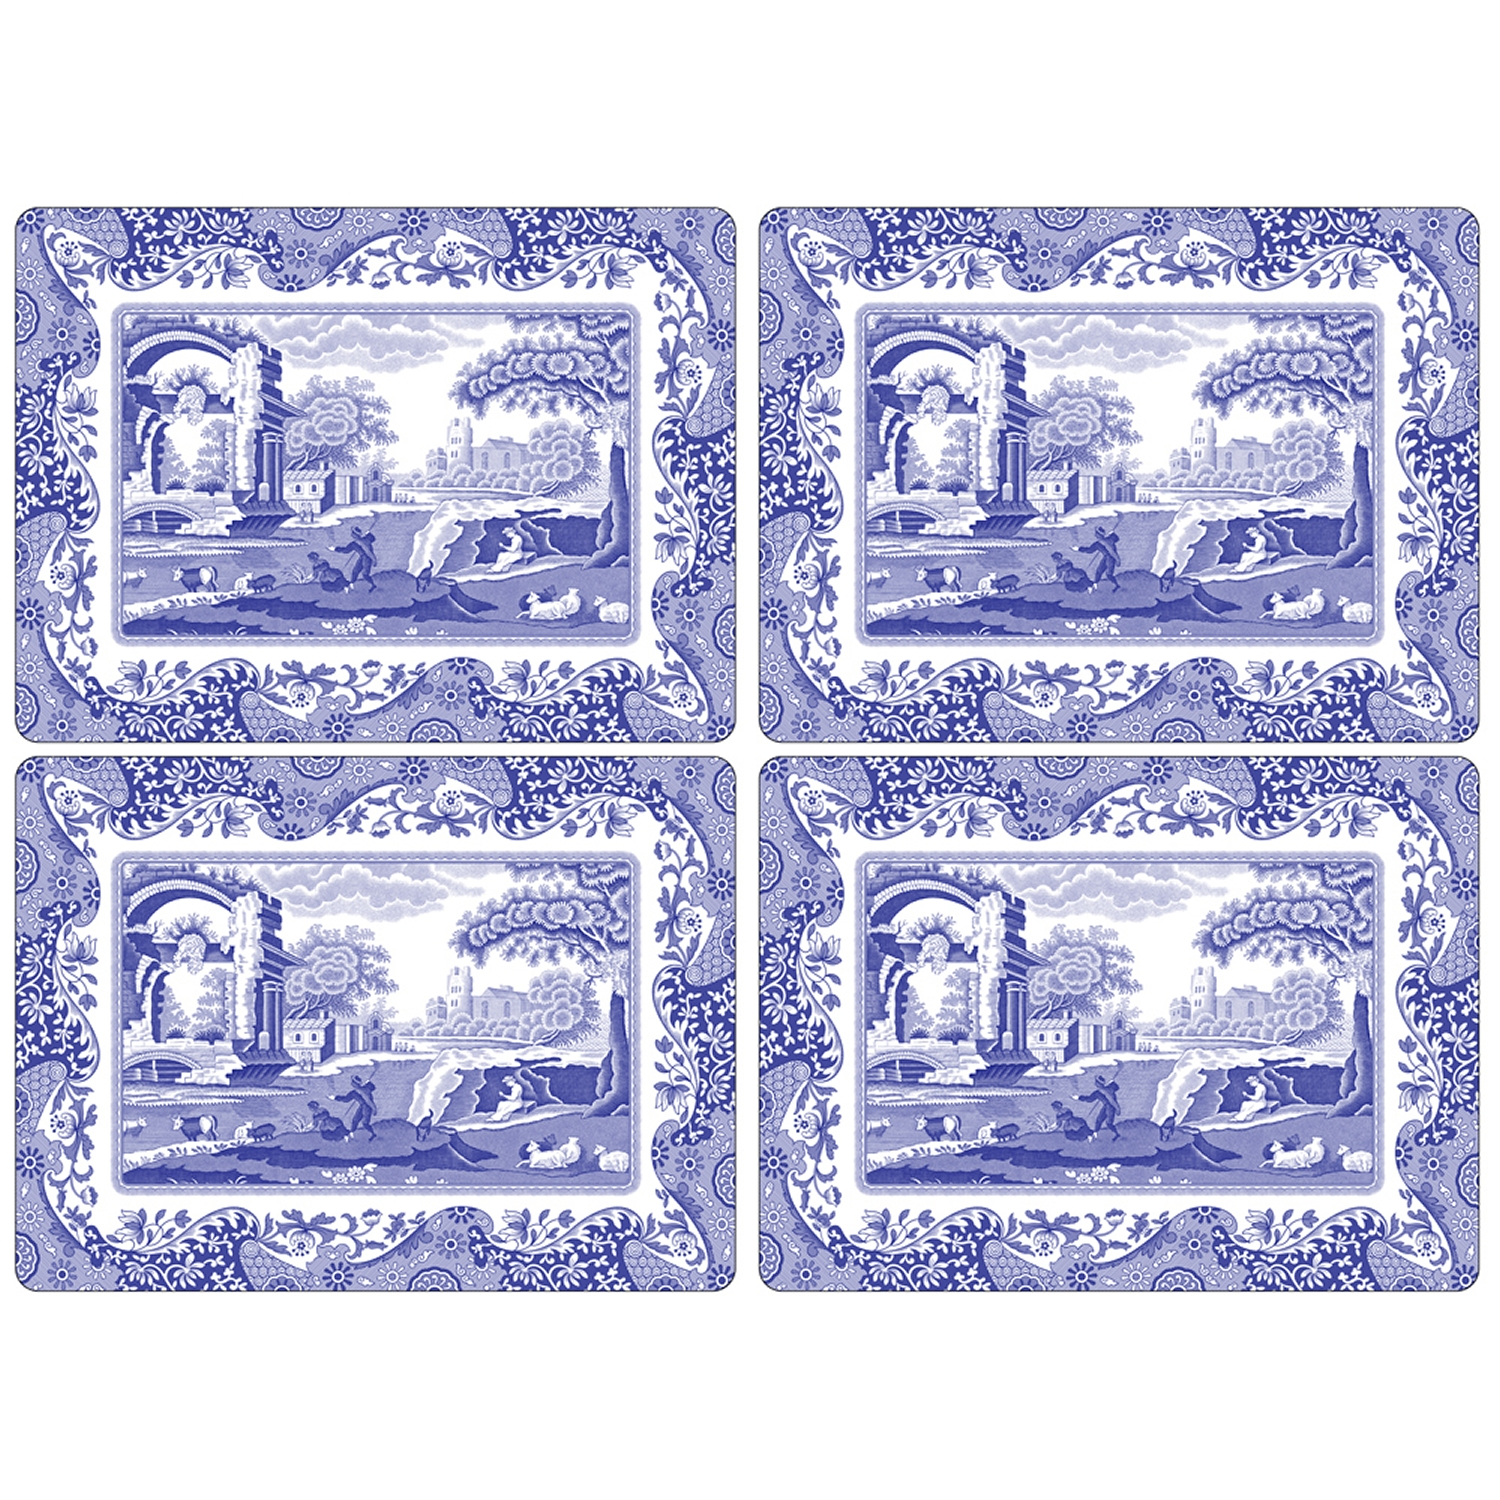 Blue Italian bordstablett 40x29, 4-pack